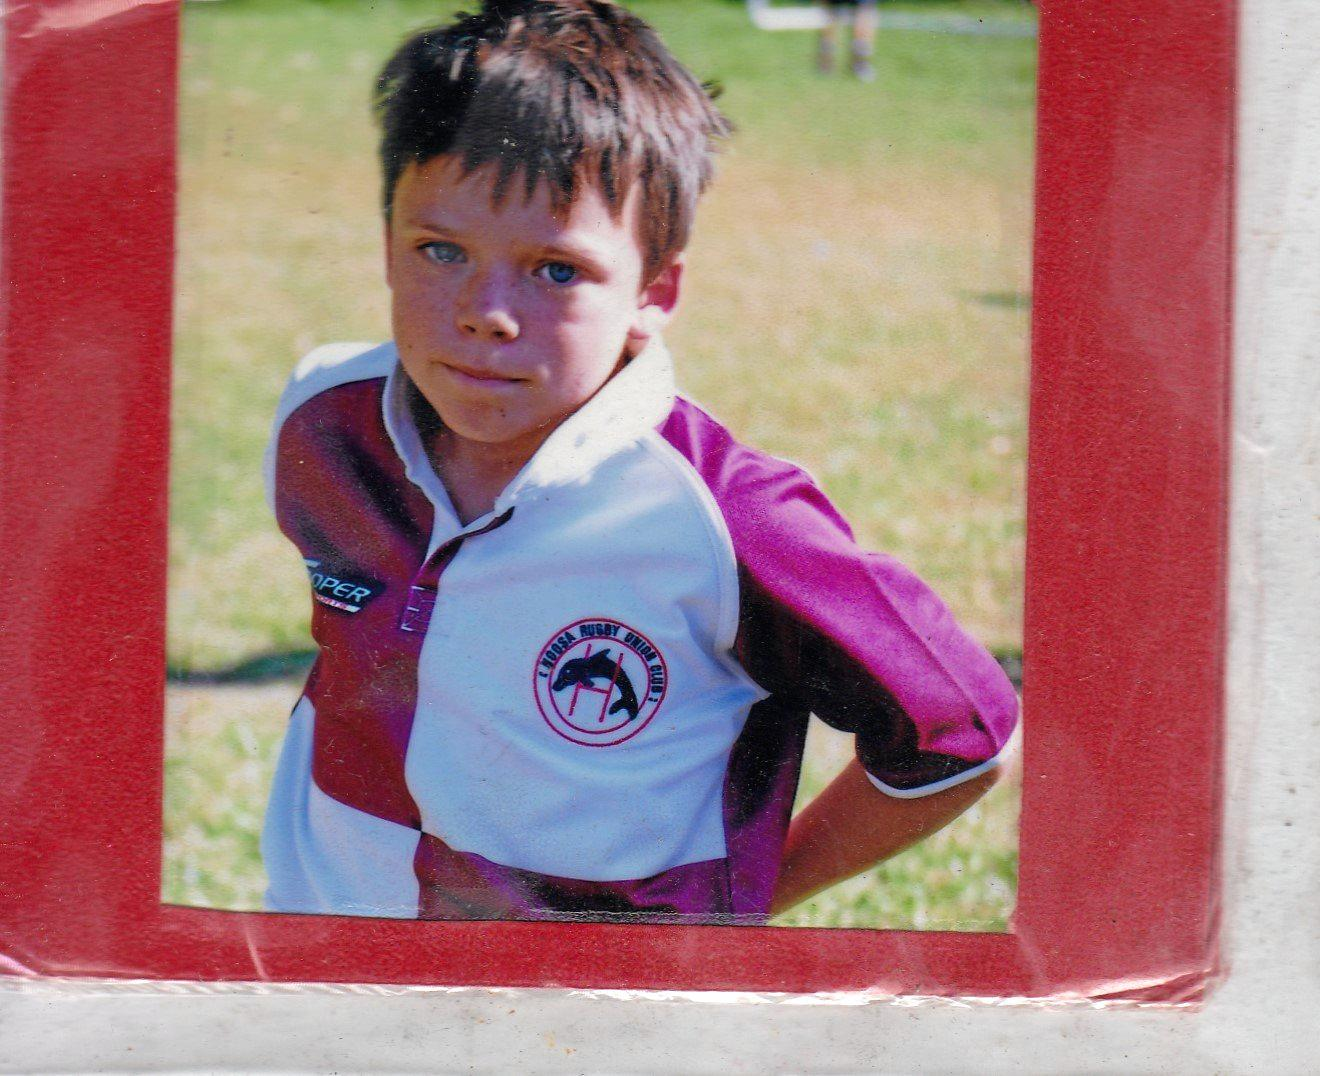 A young Jack O'Connor was always heavily involved in the community, having played for the Dolphins rugby team since he was in under-sixes.